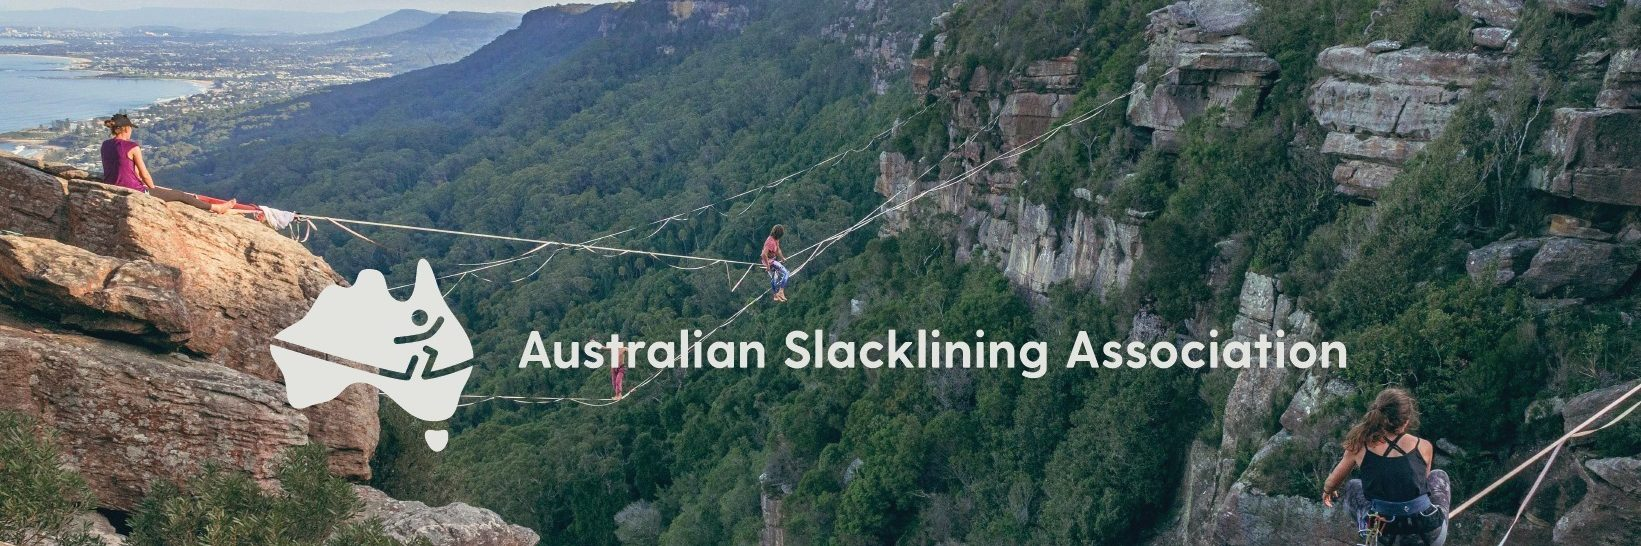 Australian Slacklining Association